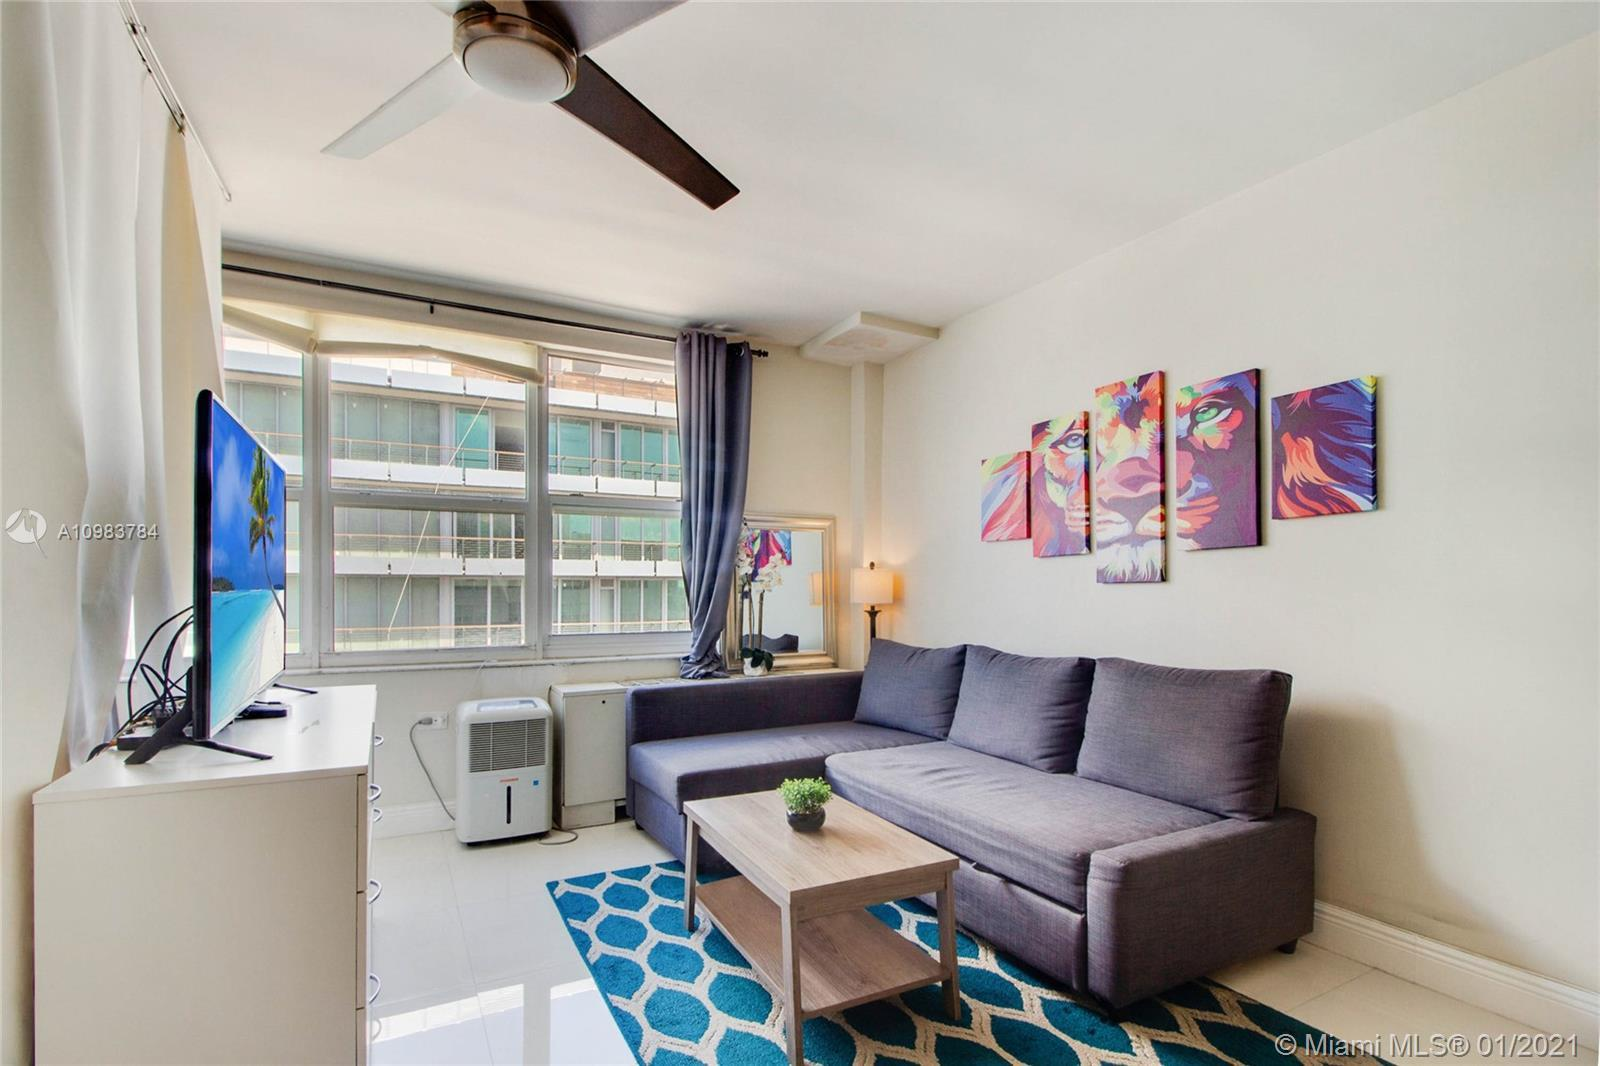 For sale Penthouse Studio Apartment in South Beach, Miami. Waking up to a view of the bay looking o